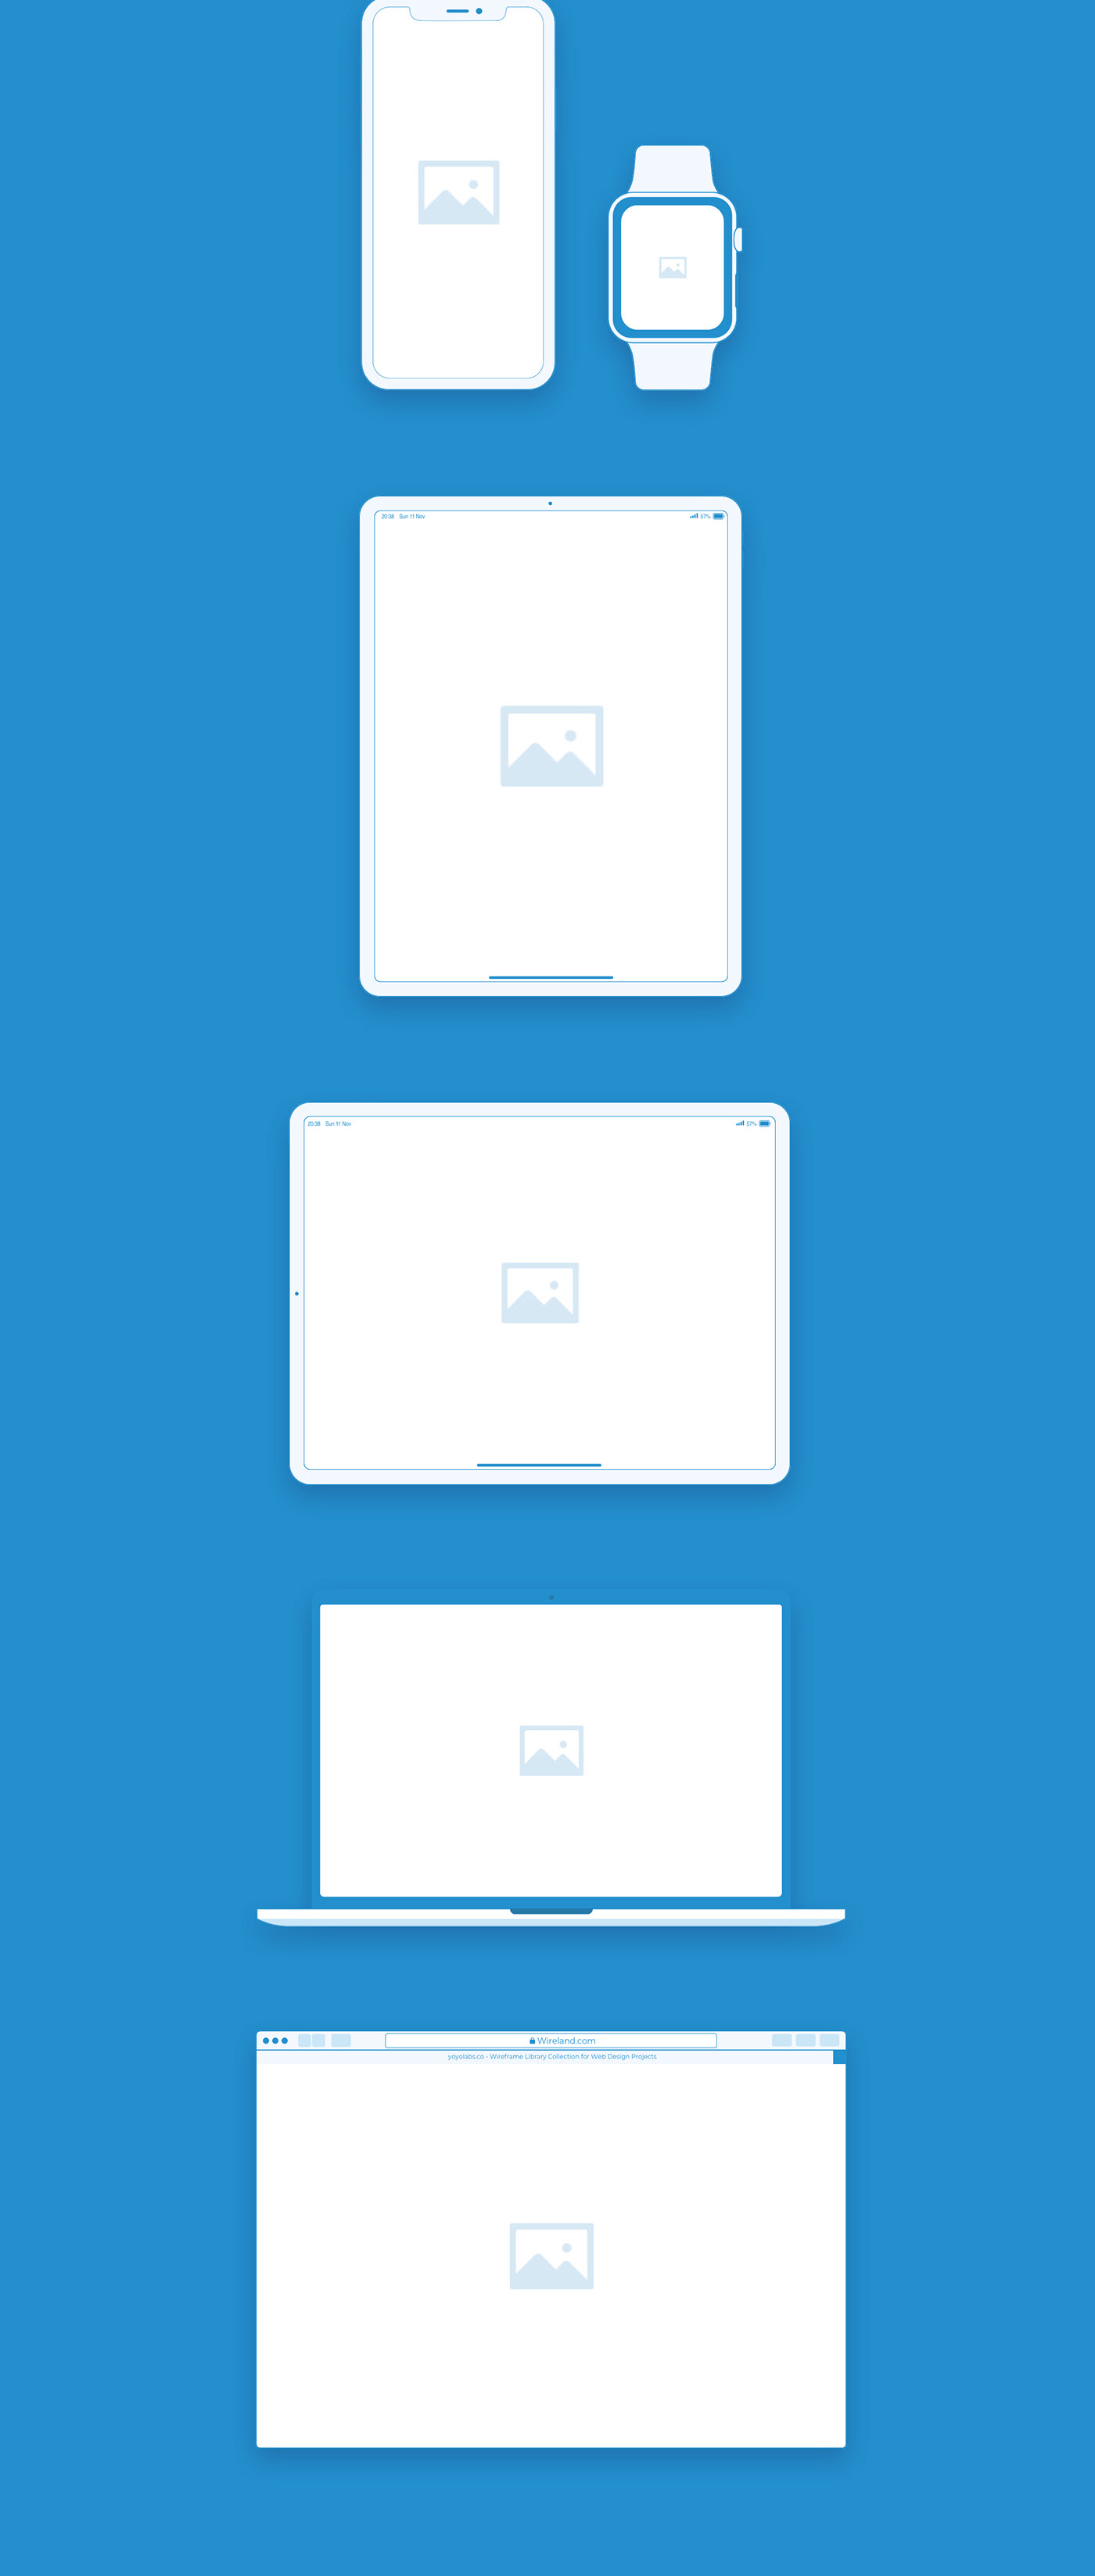 50bb6457728315.5f82276d3d077 - Wireland - Wireframe Library for Web Design Projects - Sketch Template